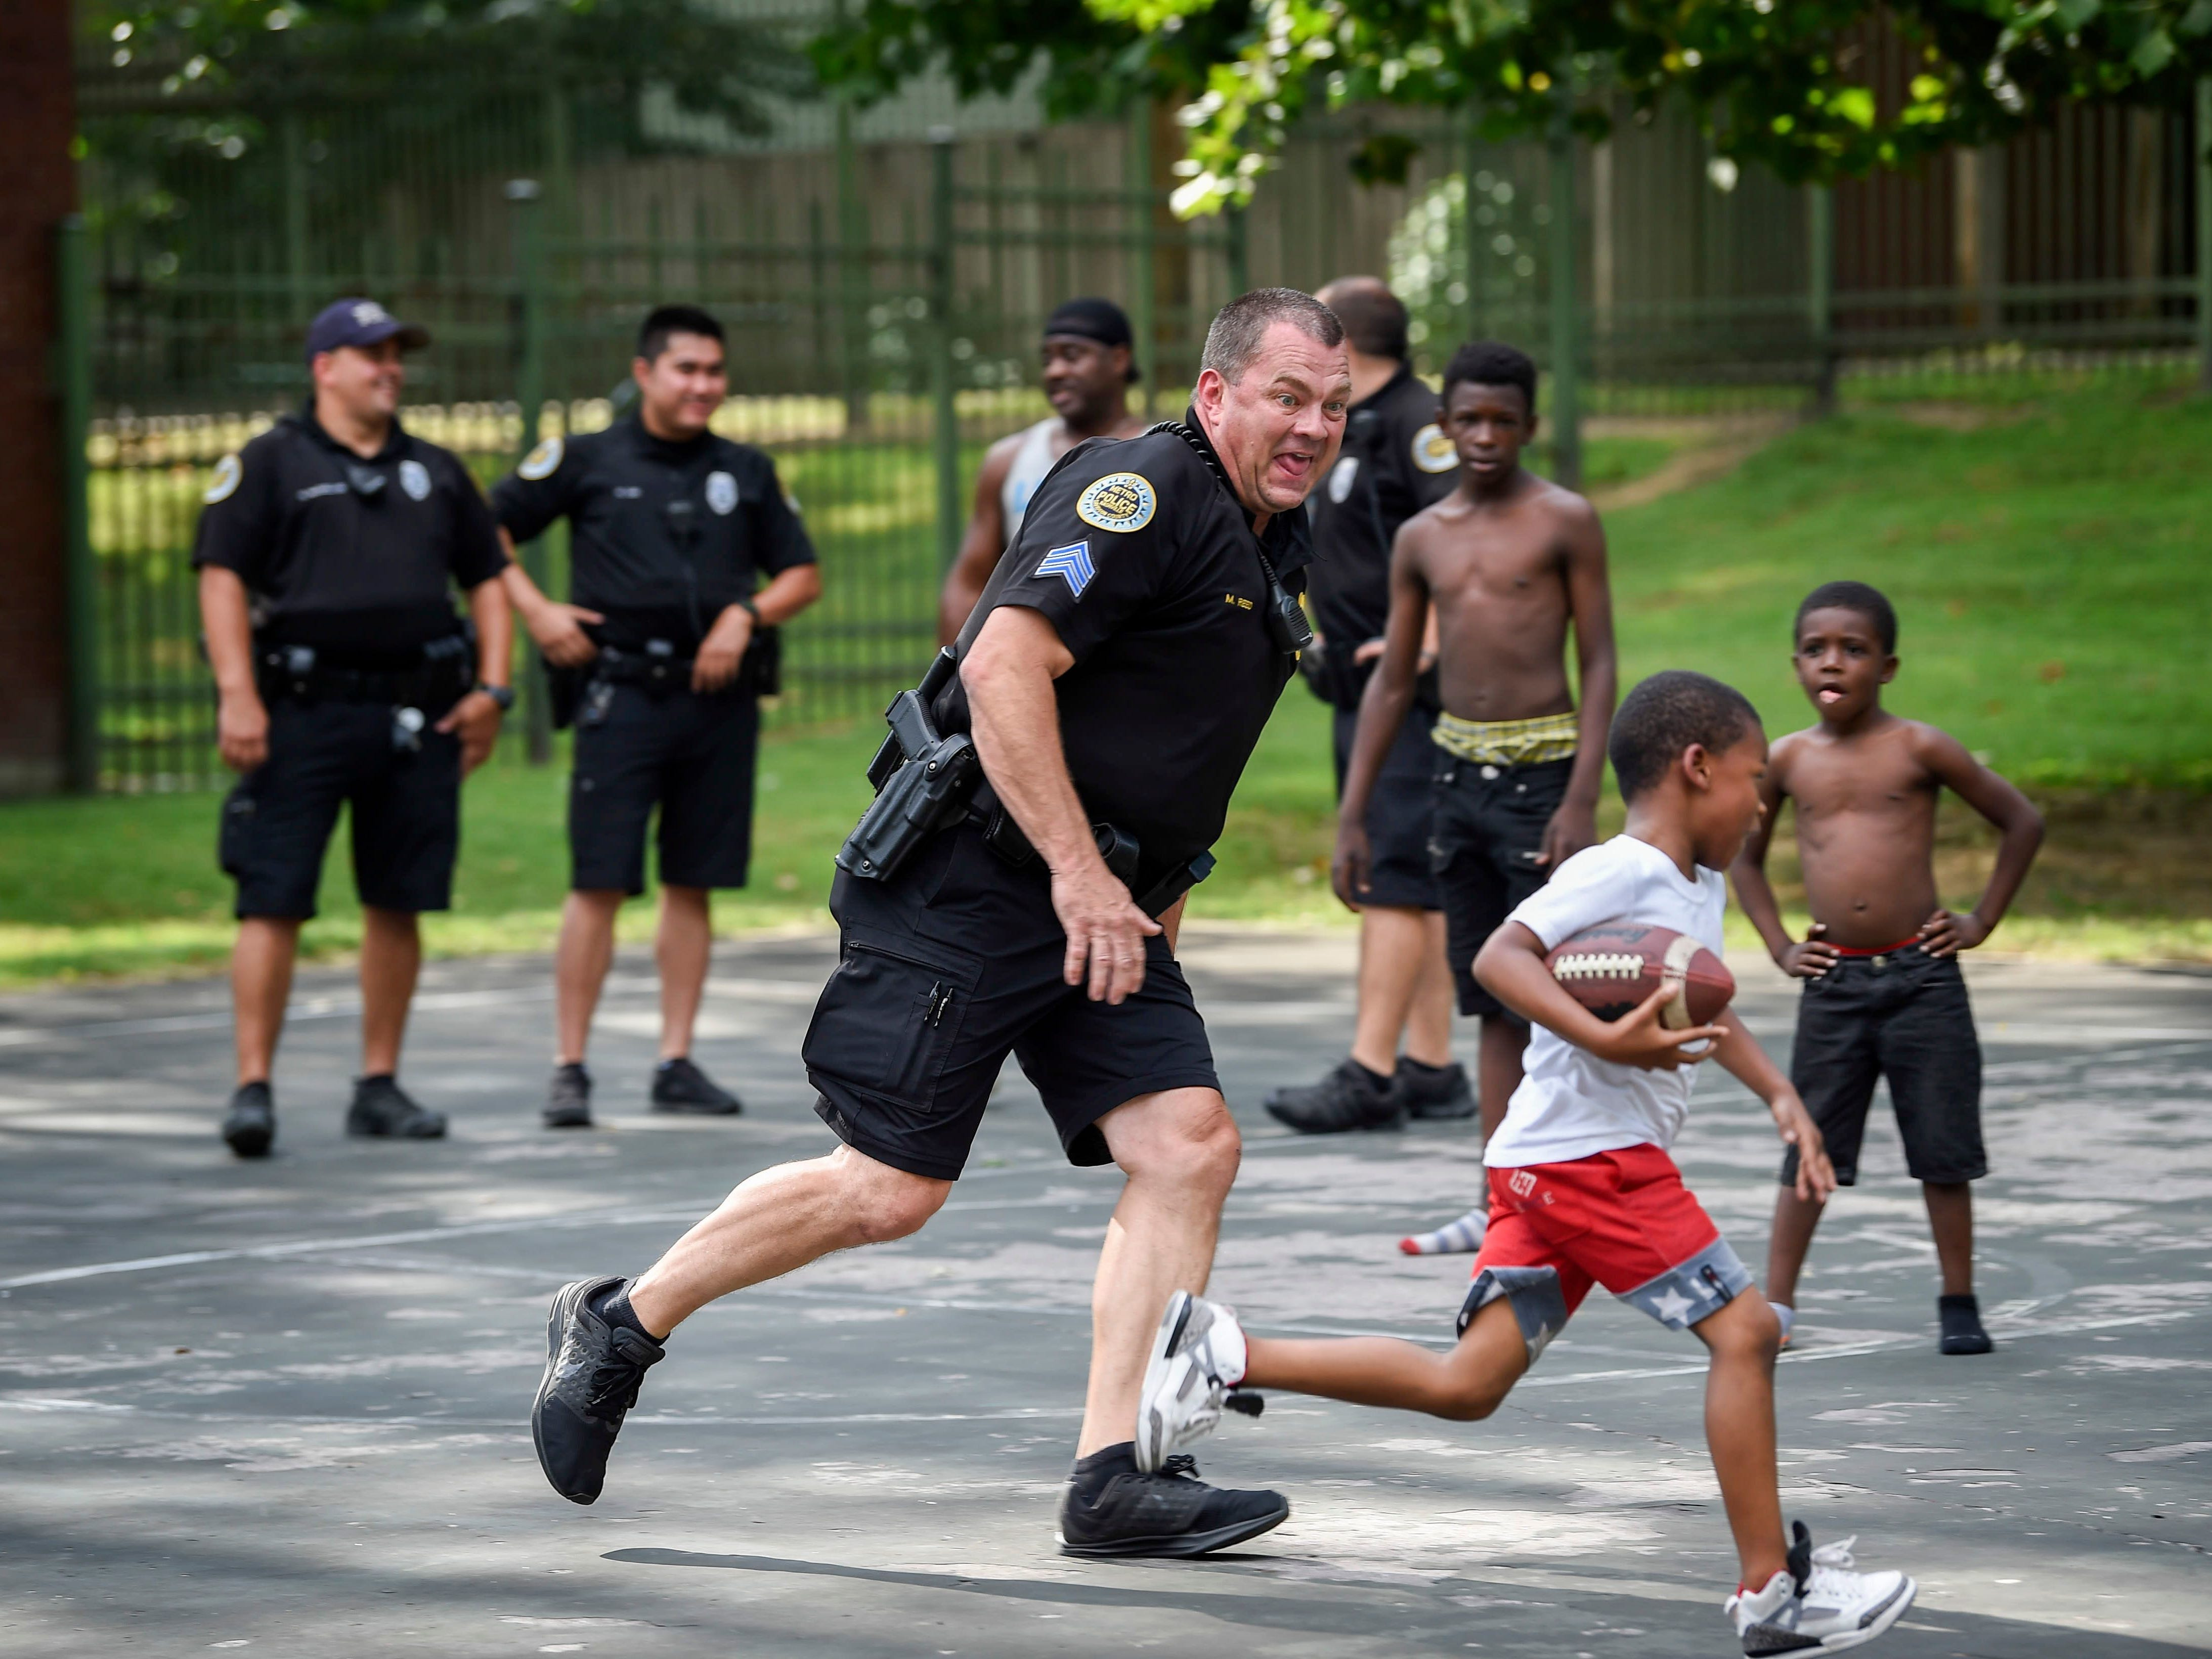 Sgt. Marty Reed with the Metro Nashville Police Department chases Denzel Bigham, 7, as the officers play football with the neighborhood children in the James A. Cayce Homes housing development Aug. 30, 2018.